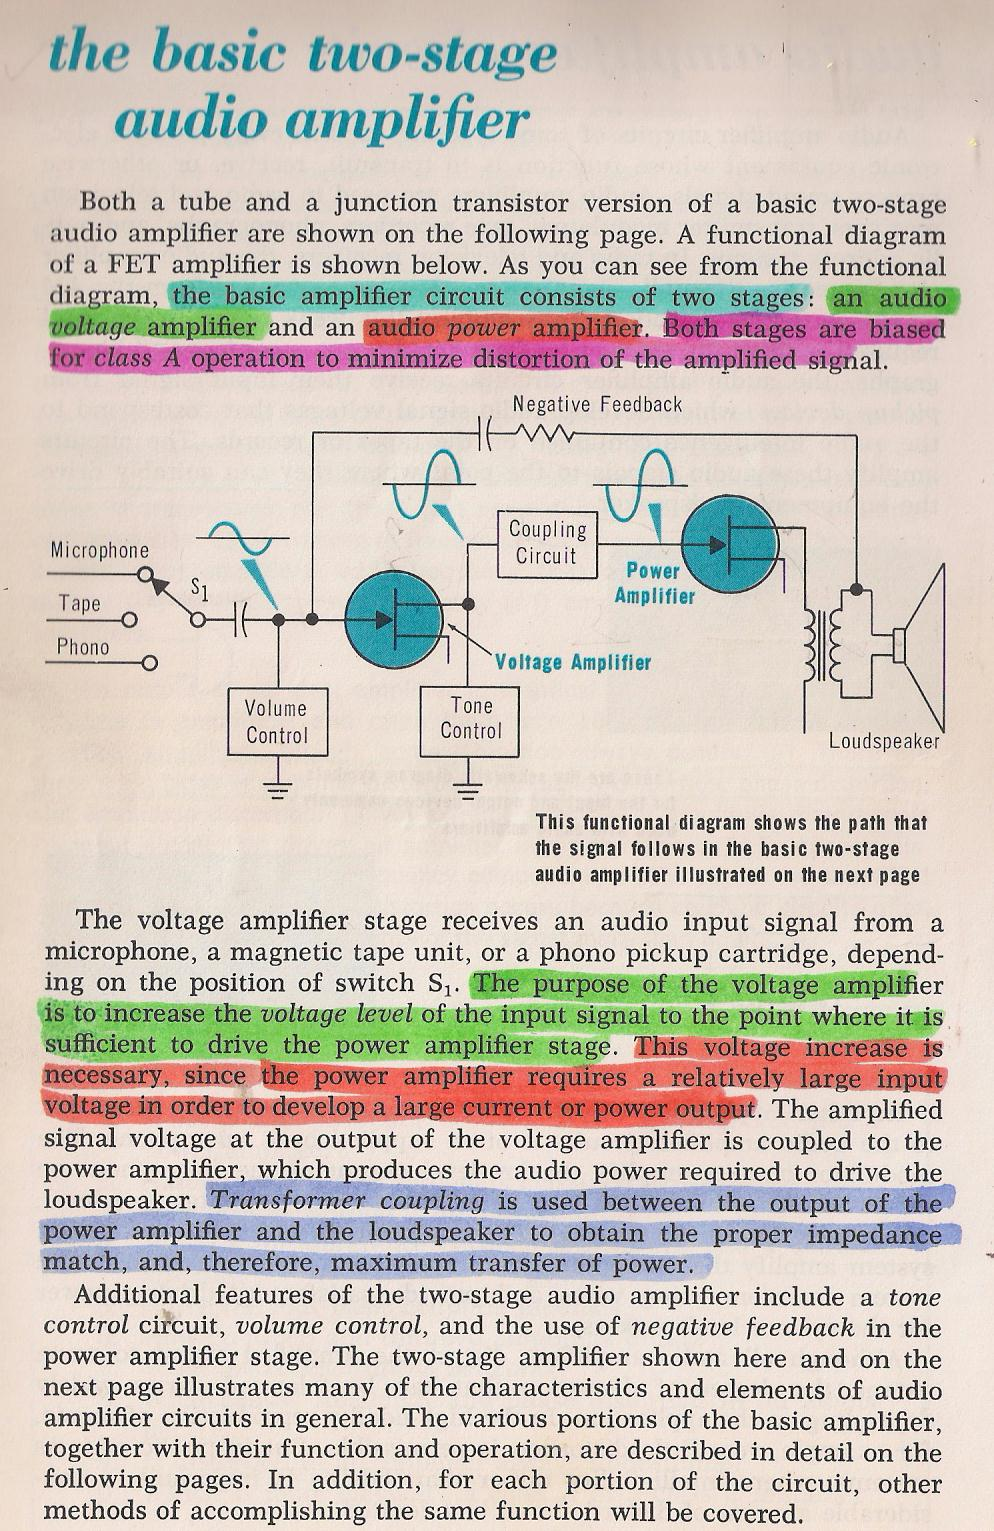 Amplifiers Amplifier Stages And Block Diagram Electronic Circuits 010a The Basic Two Stage Audio By Larry E Gugle K4rfe